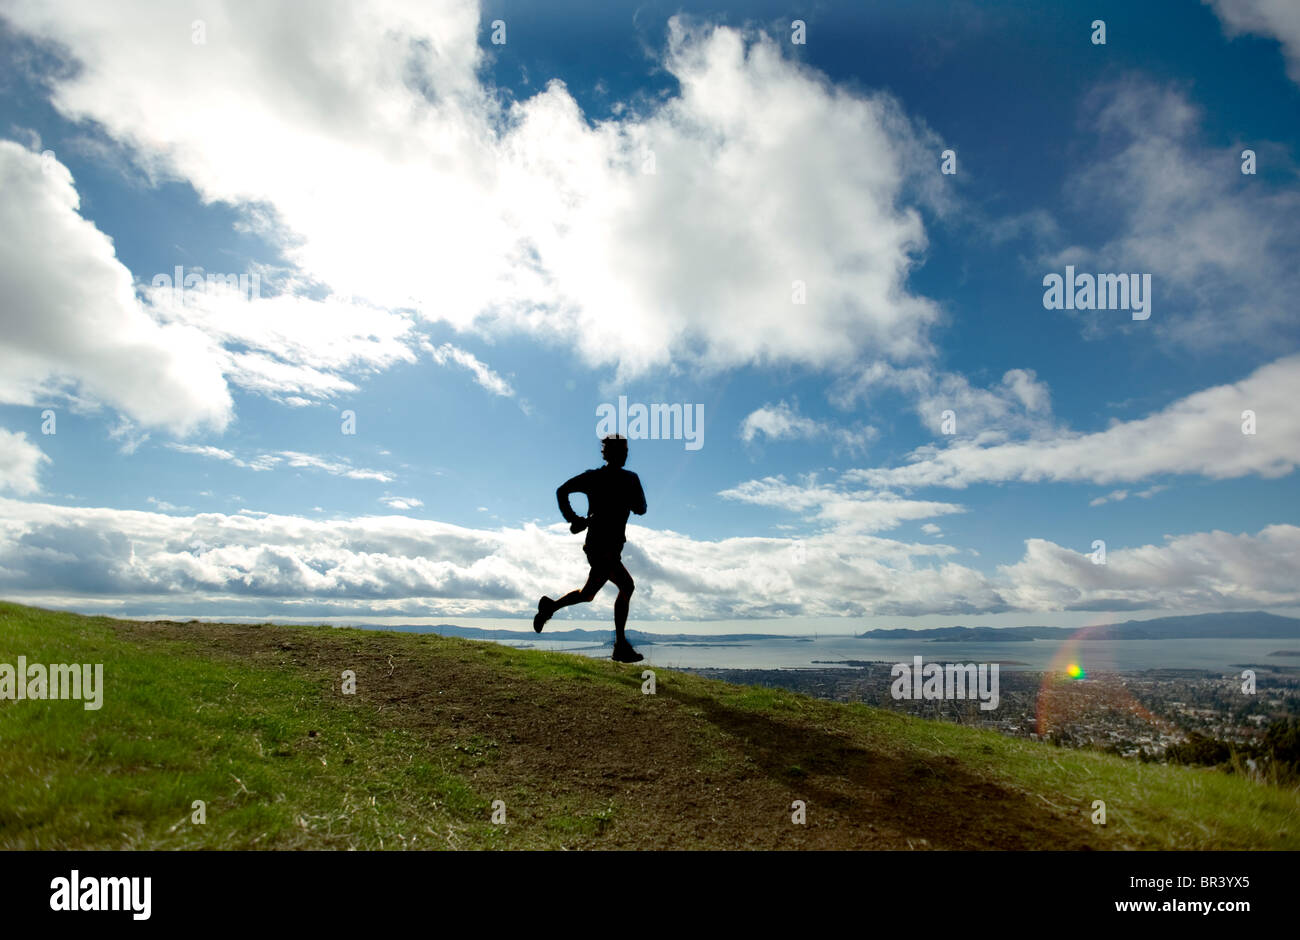 Silhouette of a man trail running above a city. - Stock Image